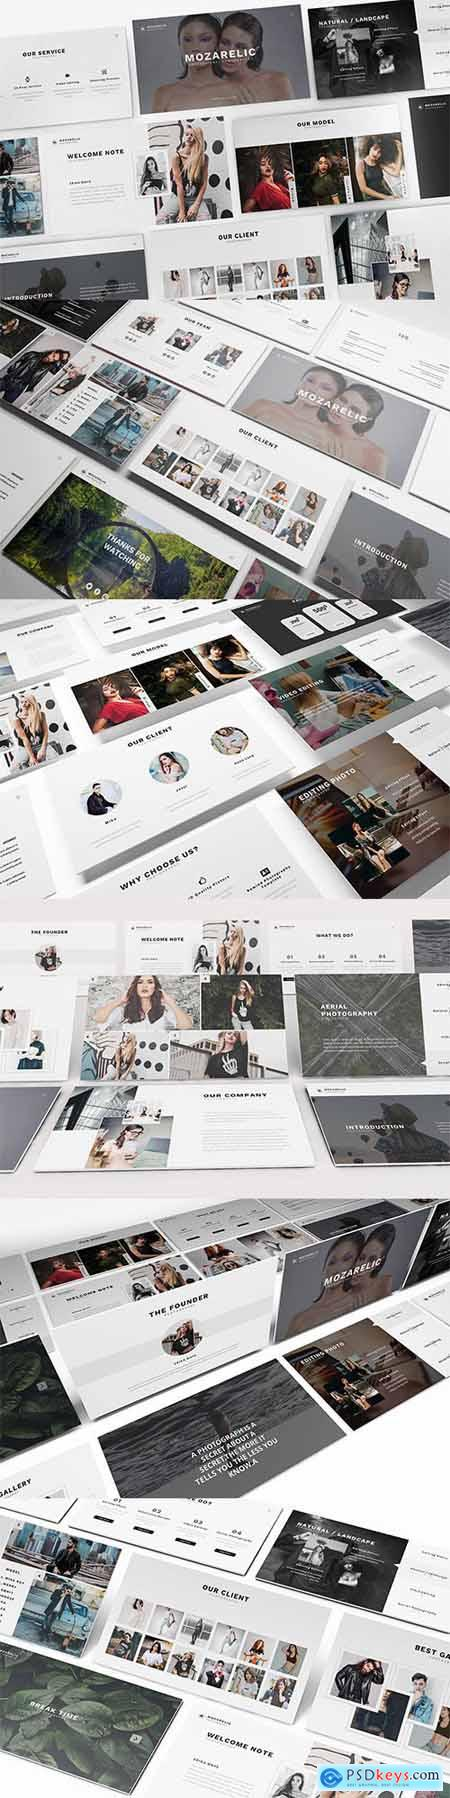 Mozarelic Photography Powerpoint Template